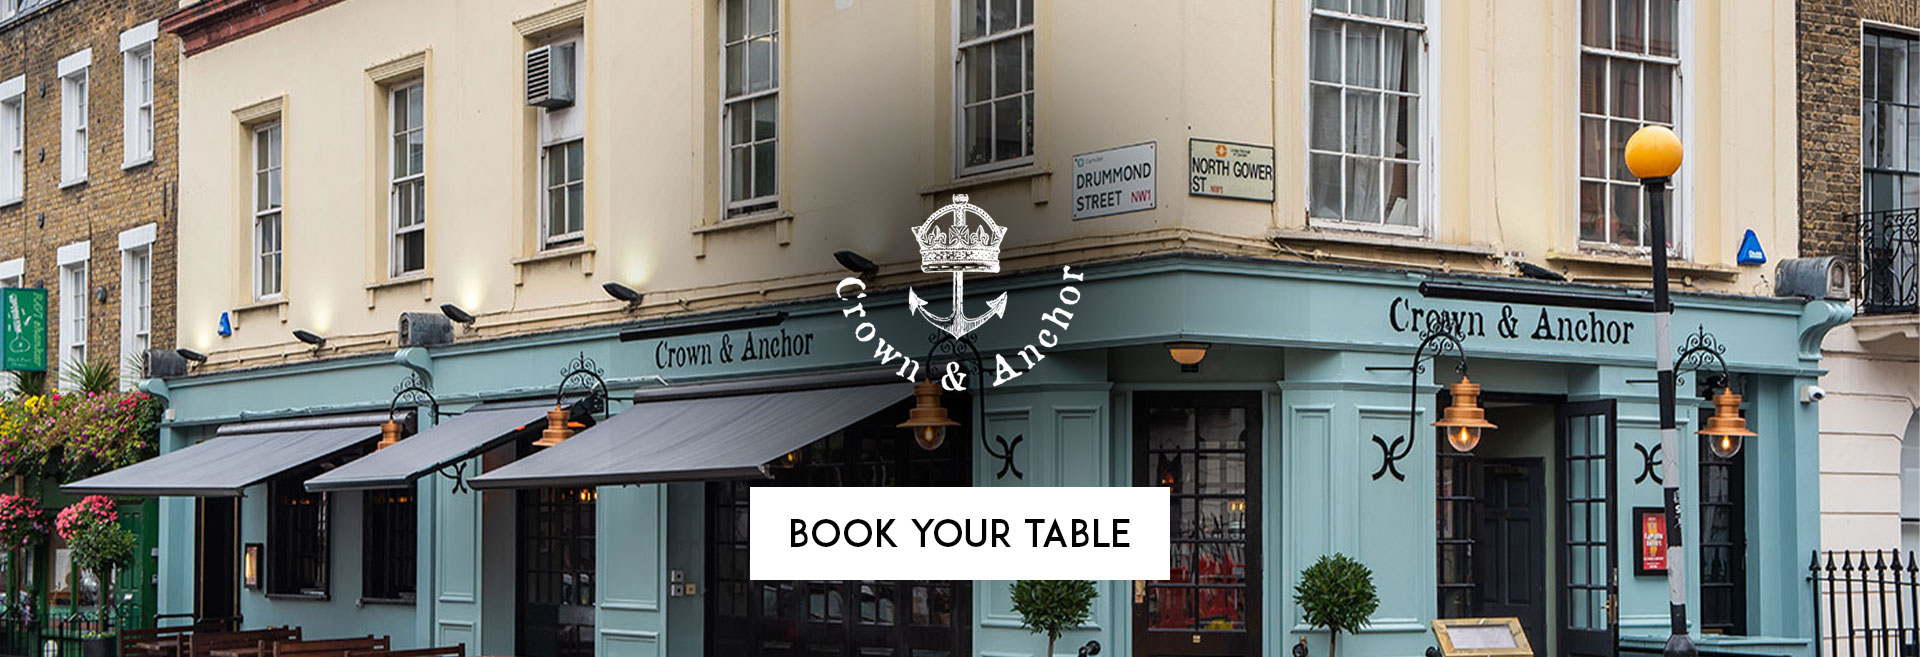 Book Your Table The Crown & Anchor